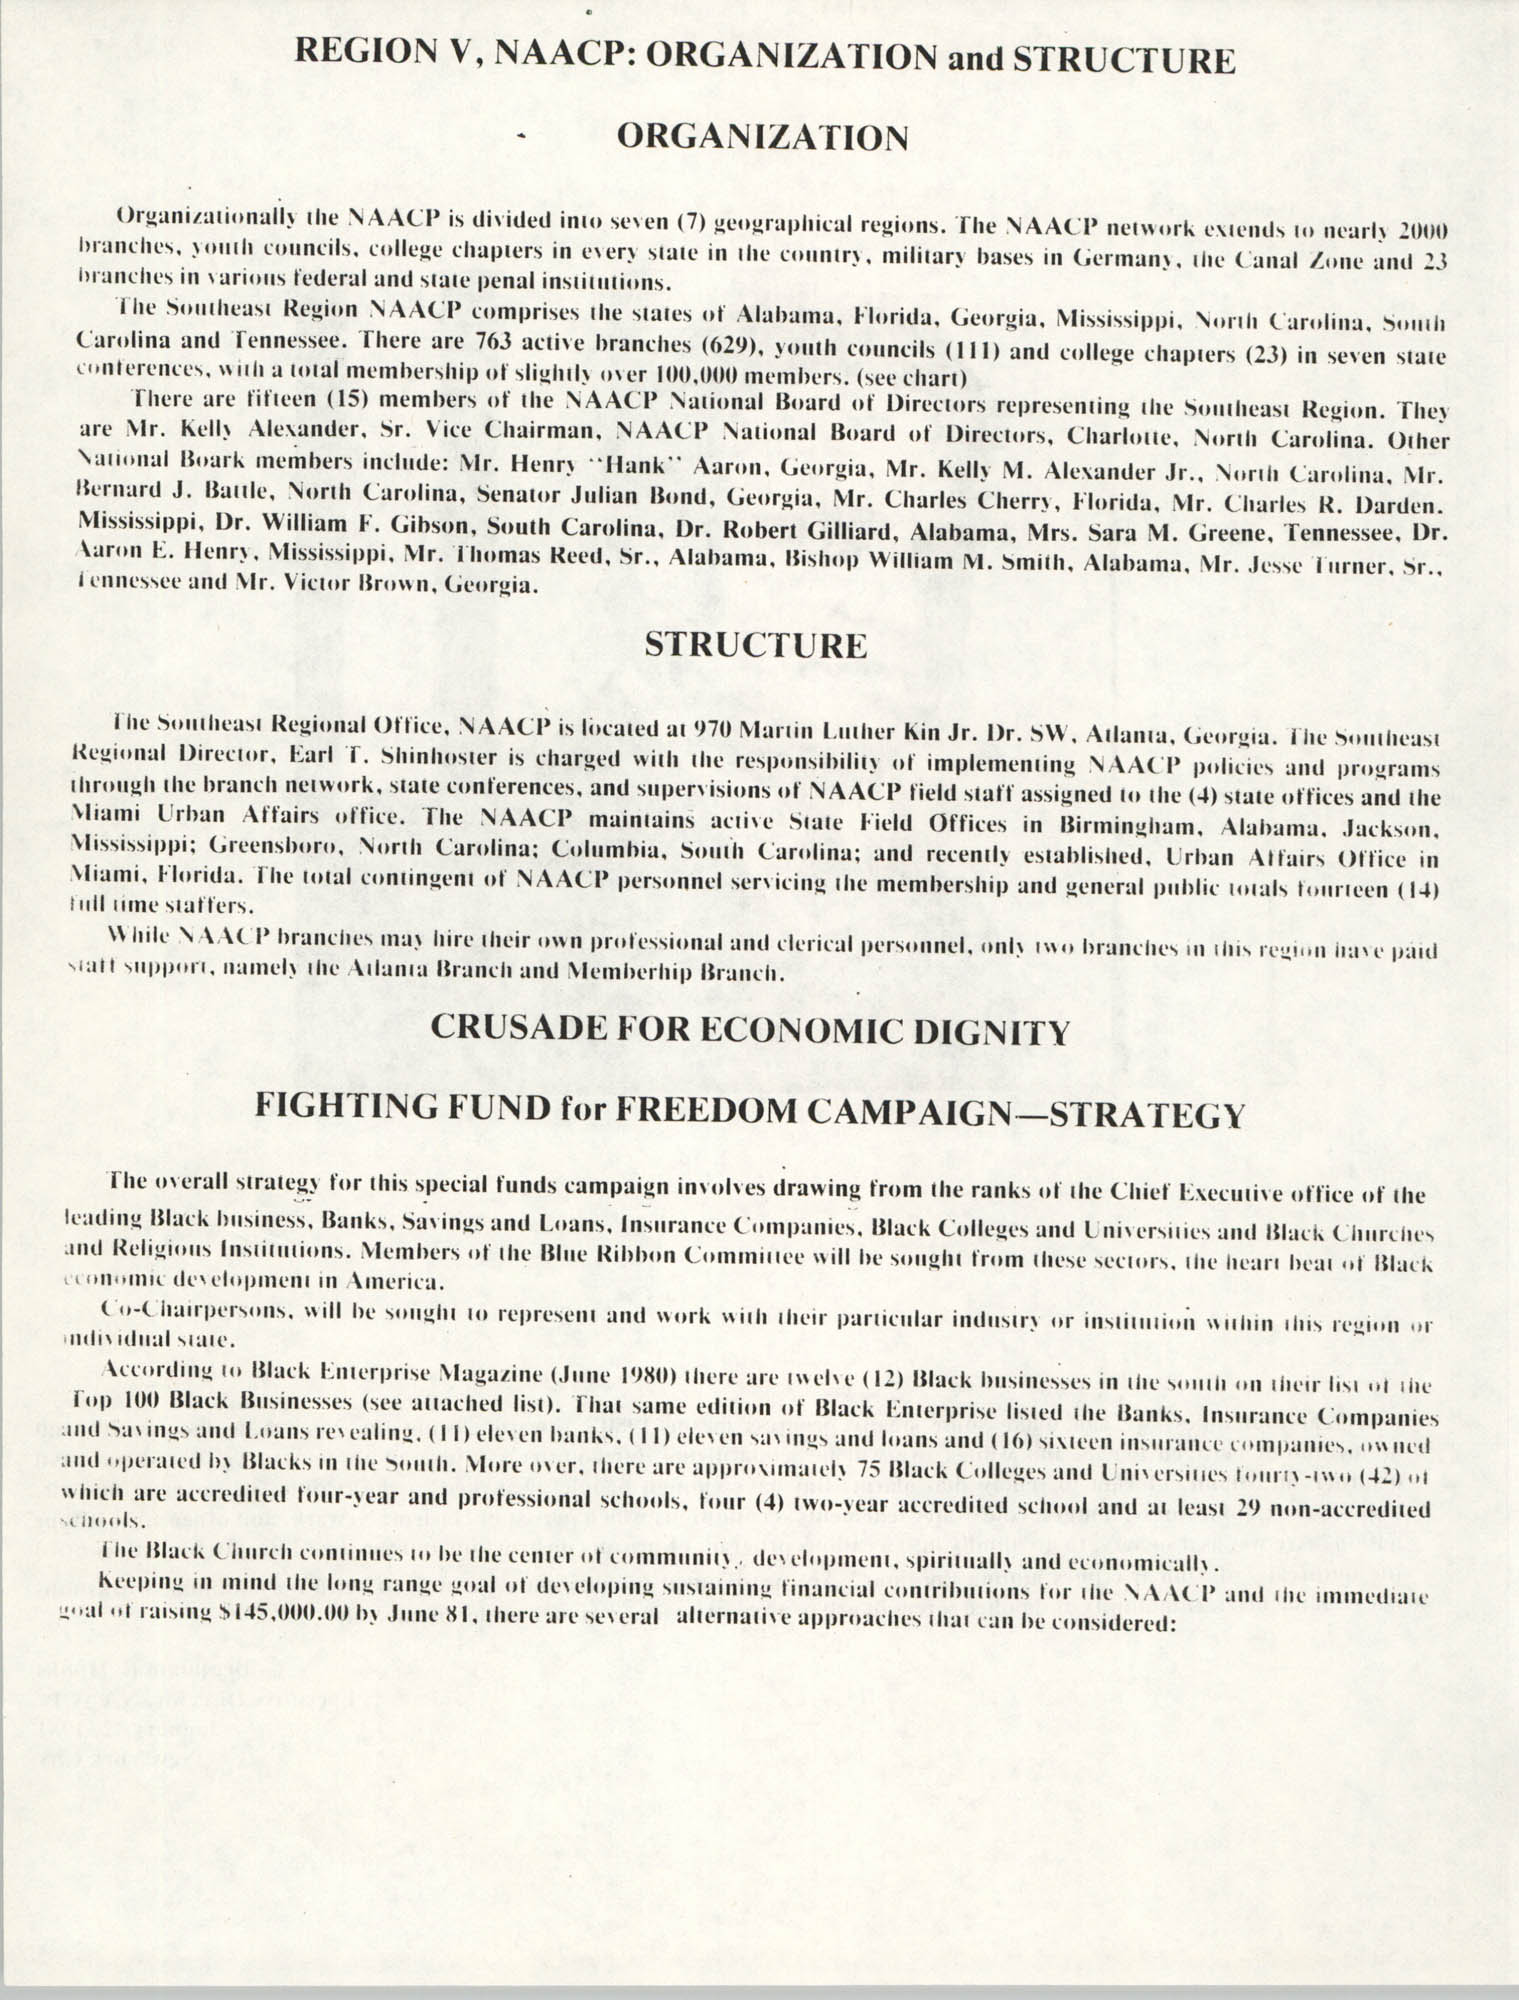 NAACP Region V, Crusade for Economic Dignity, Special Fund Raising Campaign, 1981, Page 2